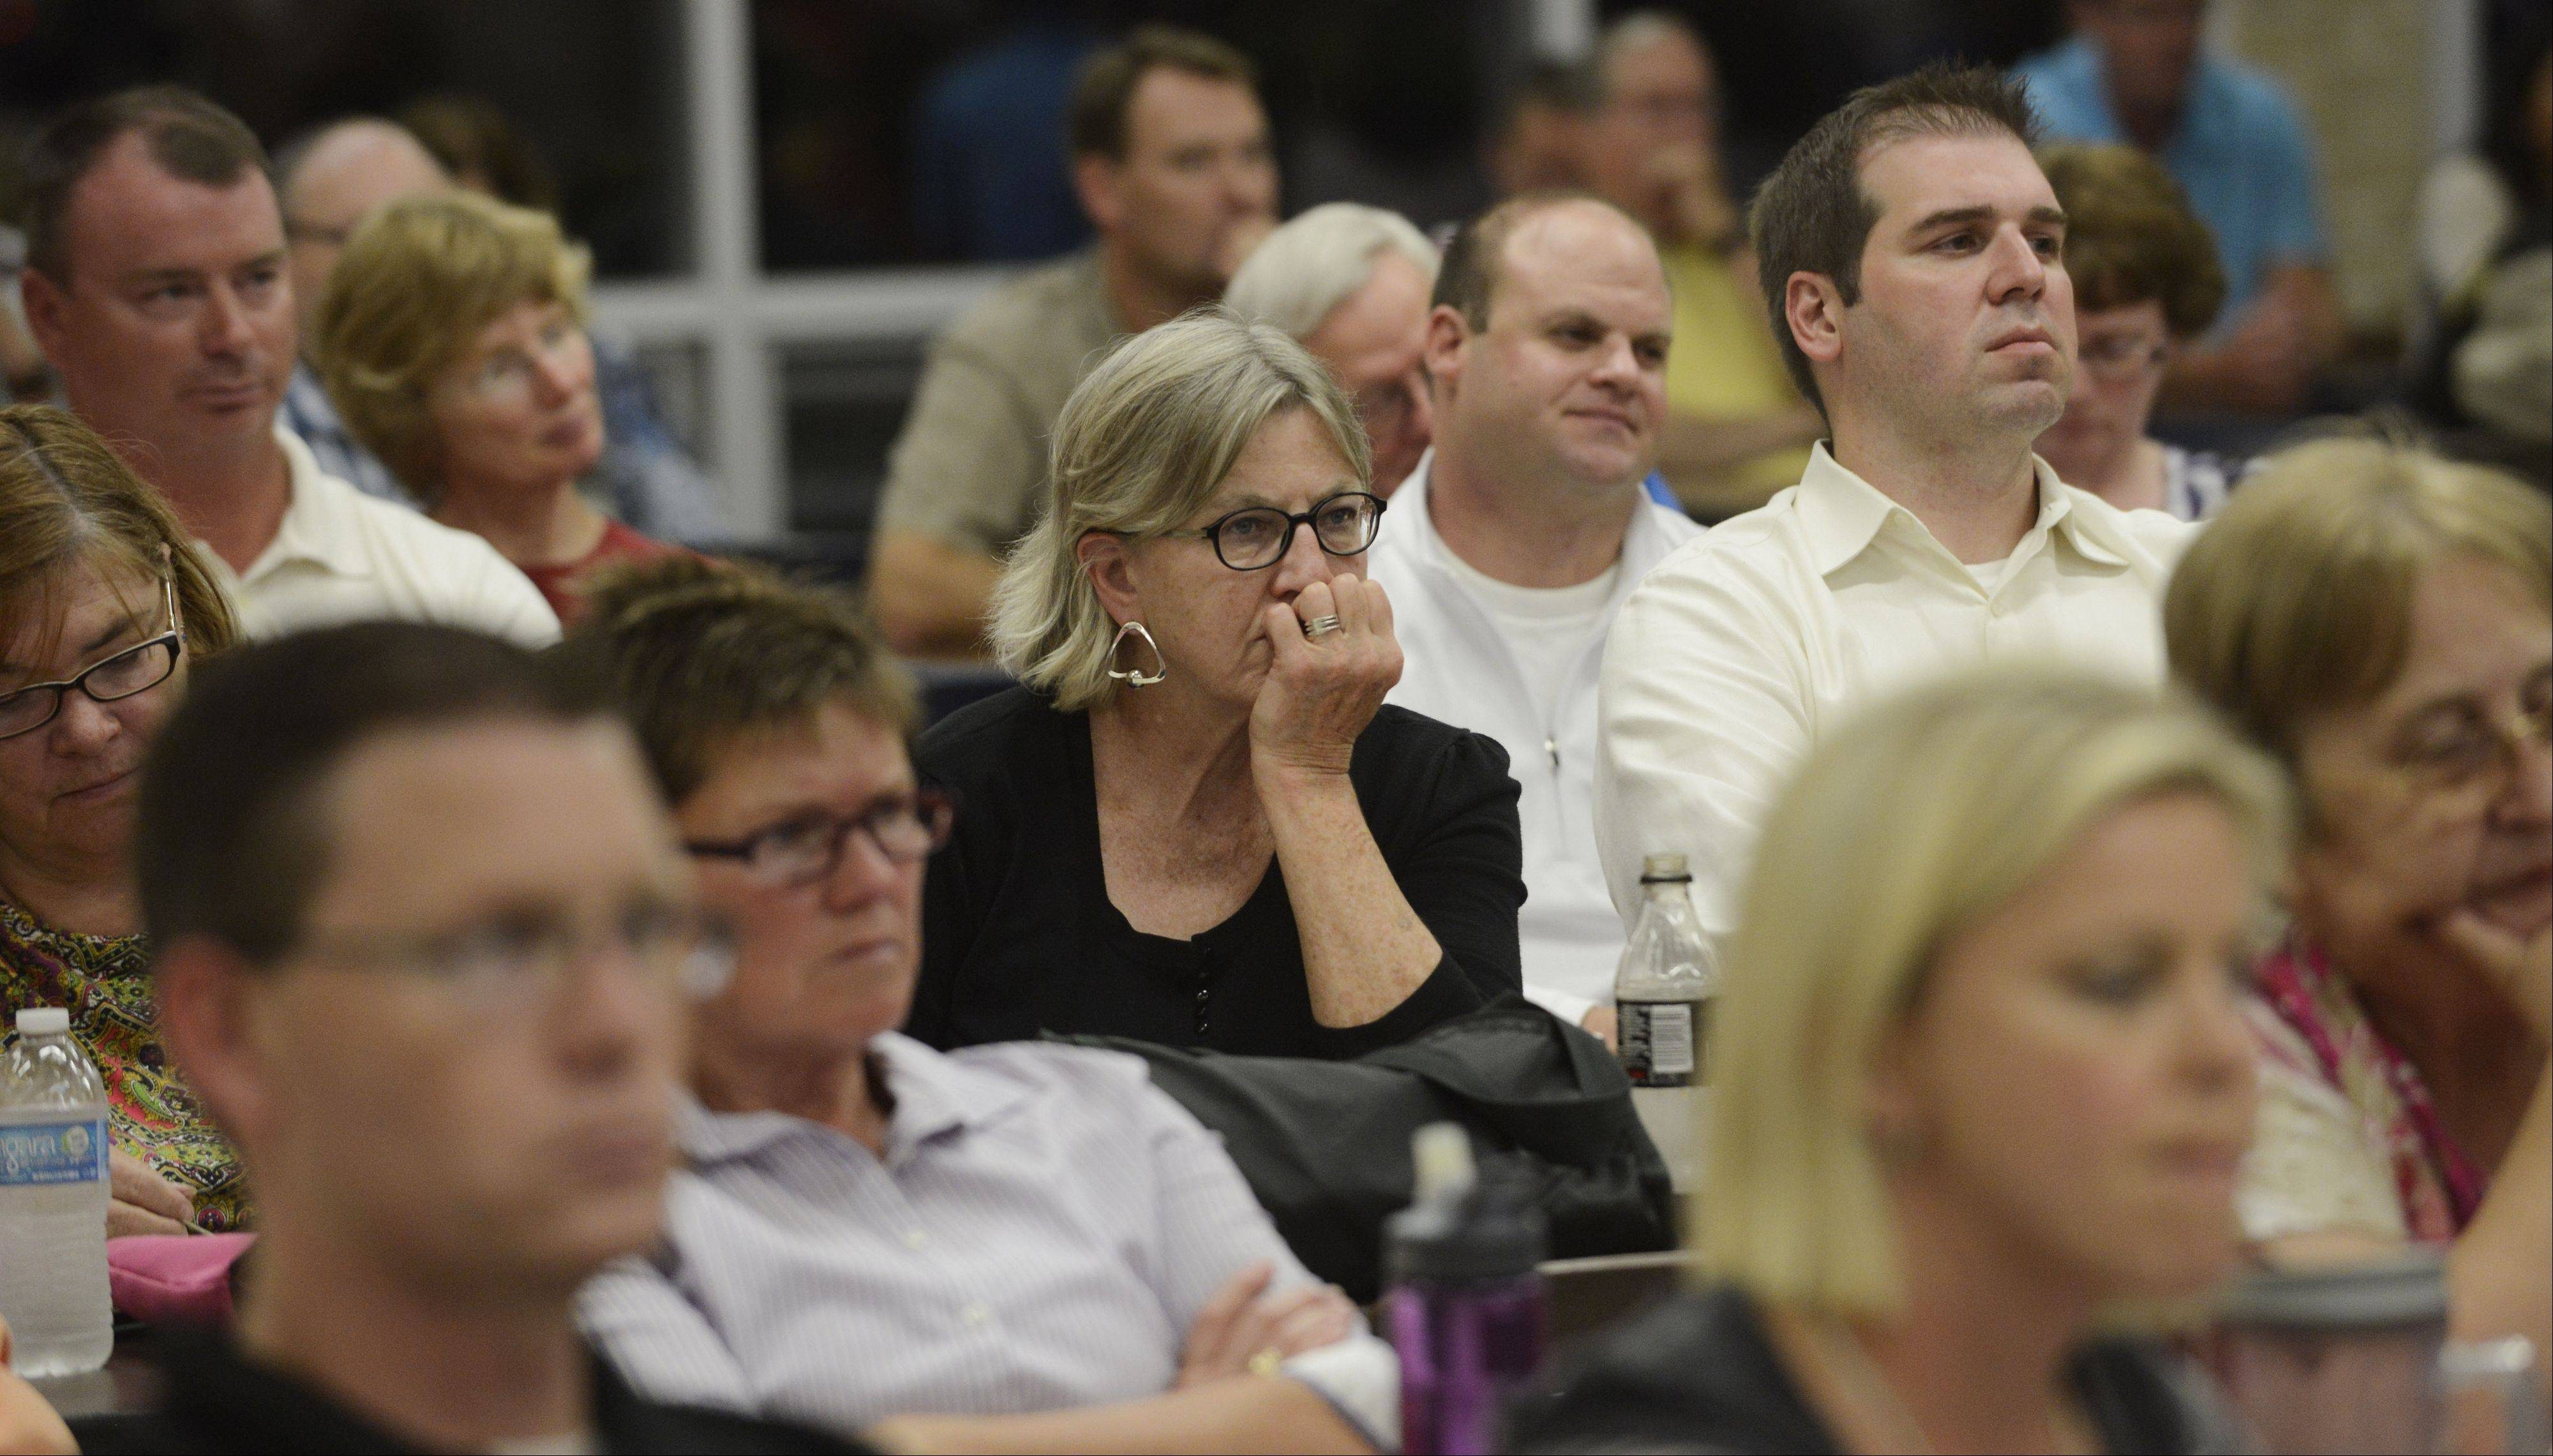 JOE LEWNARD/jlewnard@dailyherald.comResidents listen during the Wauconda Village Board meeting Tuesday, which had been moved to Wauconda High School because of the large number of people in attendance.